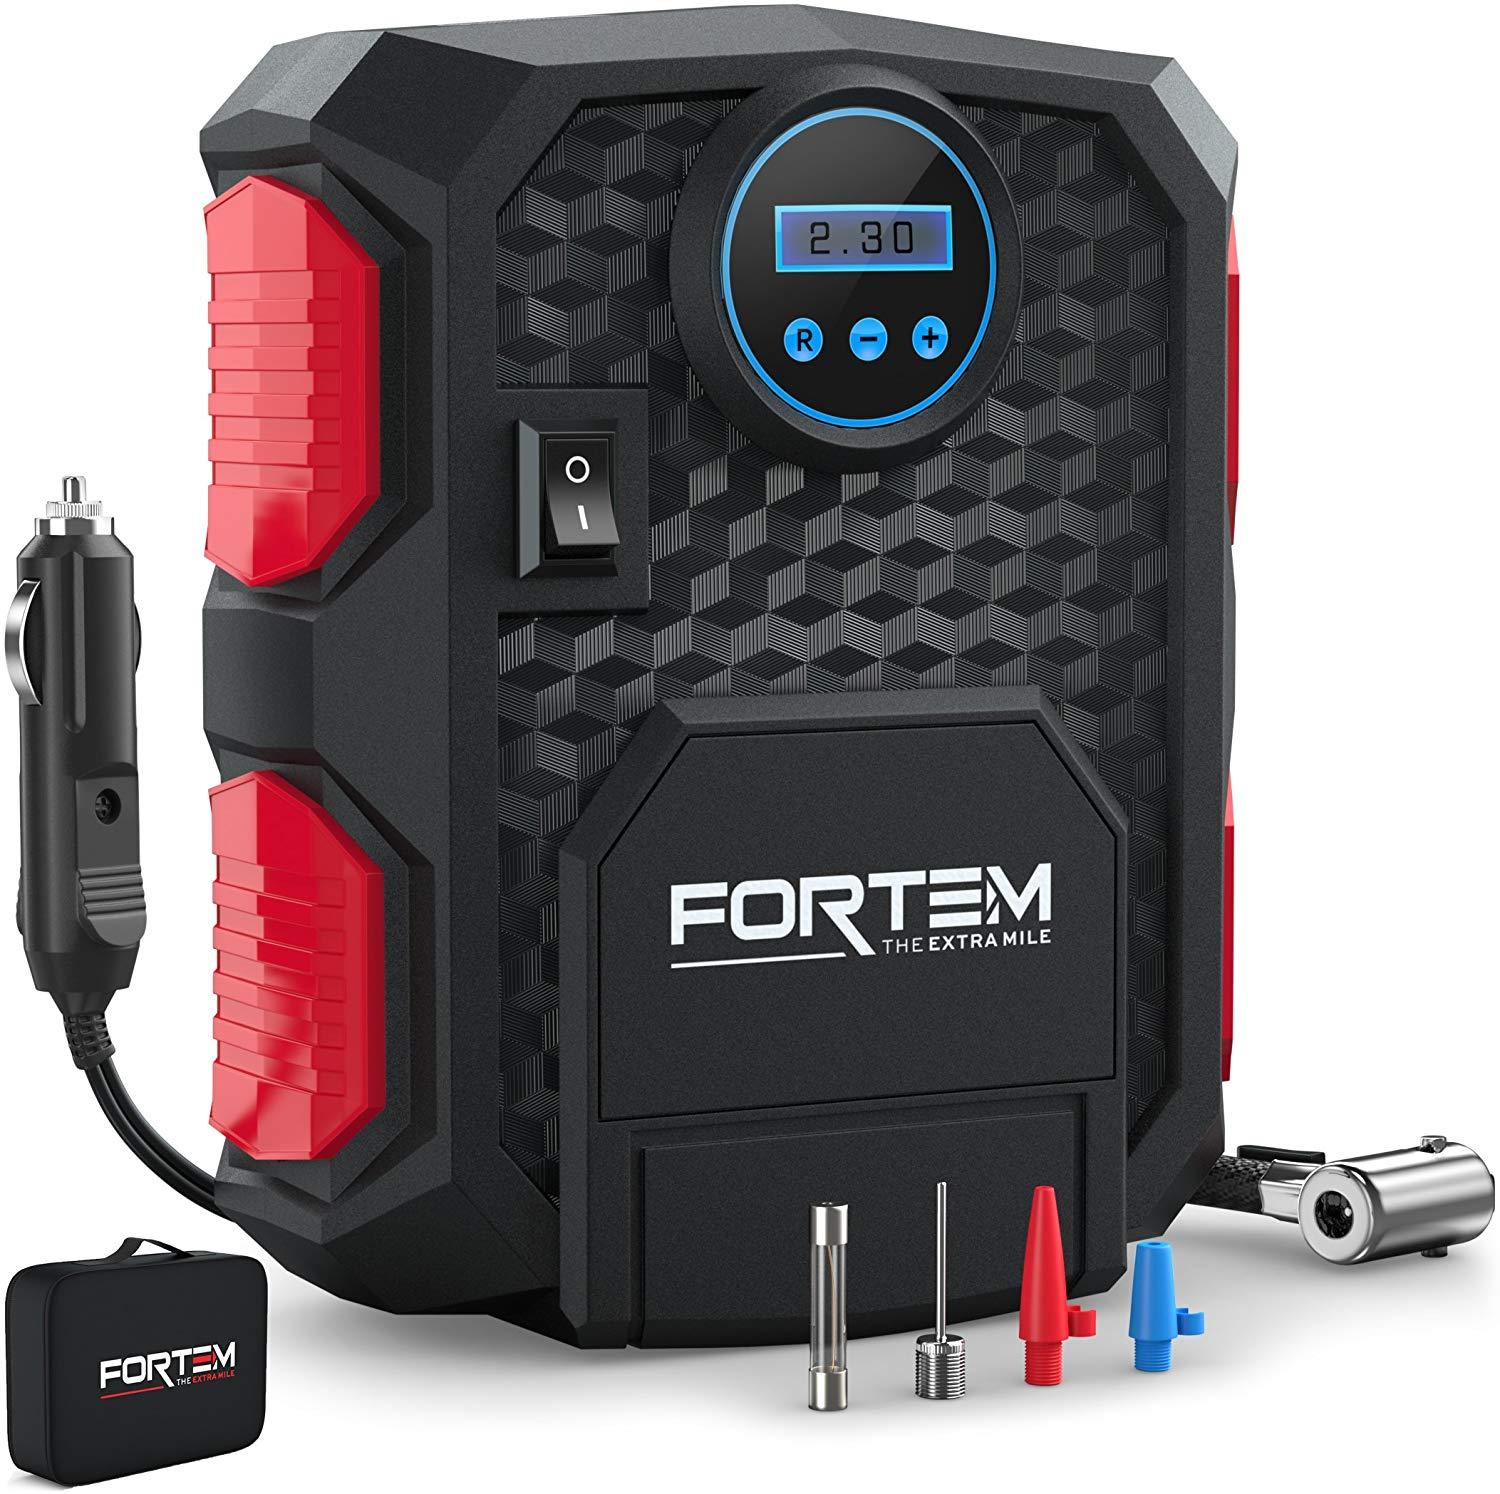 FORTEM Digital Tire Inflator for Cars